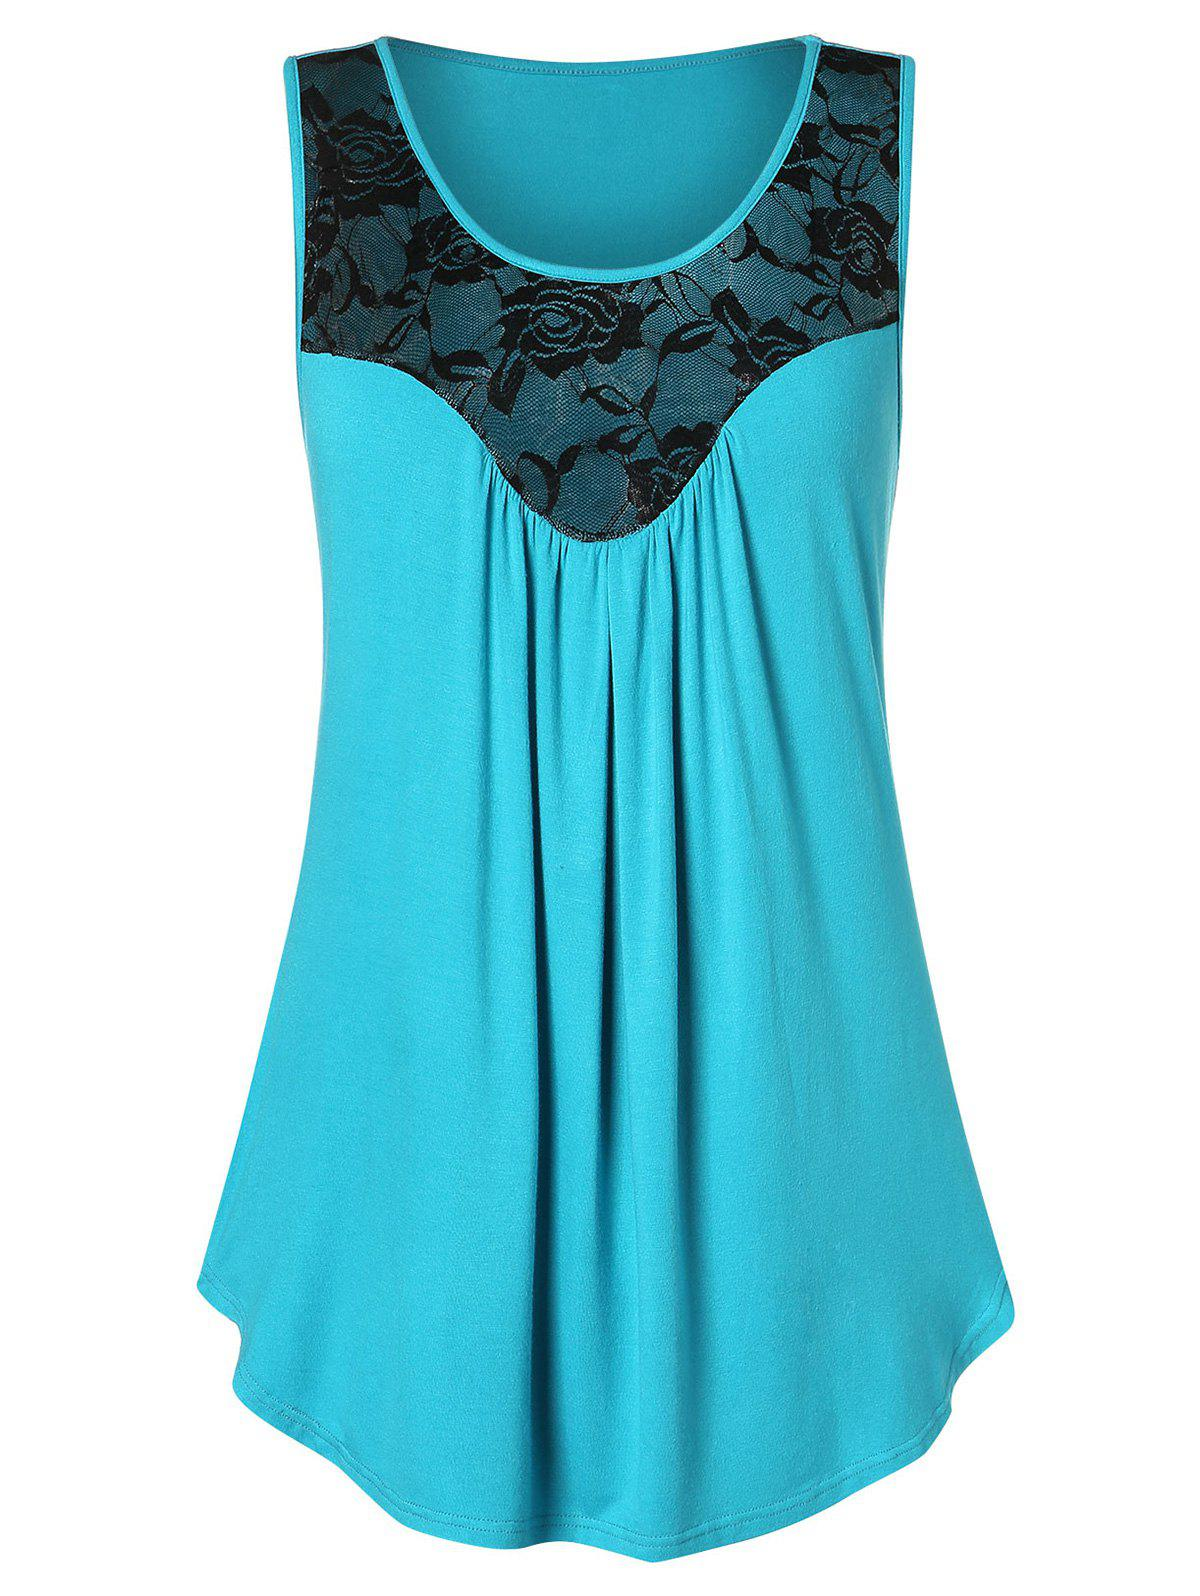 Cheap Floral Lace Two Tone Tank Top